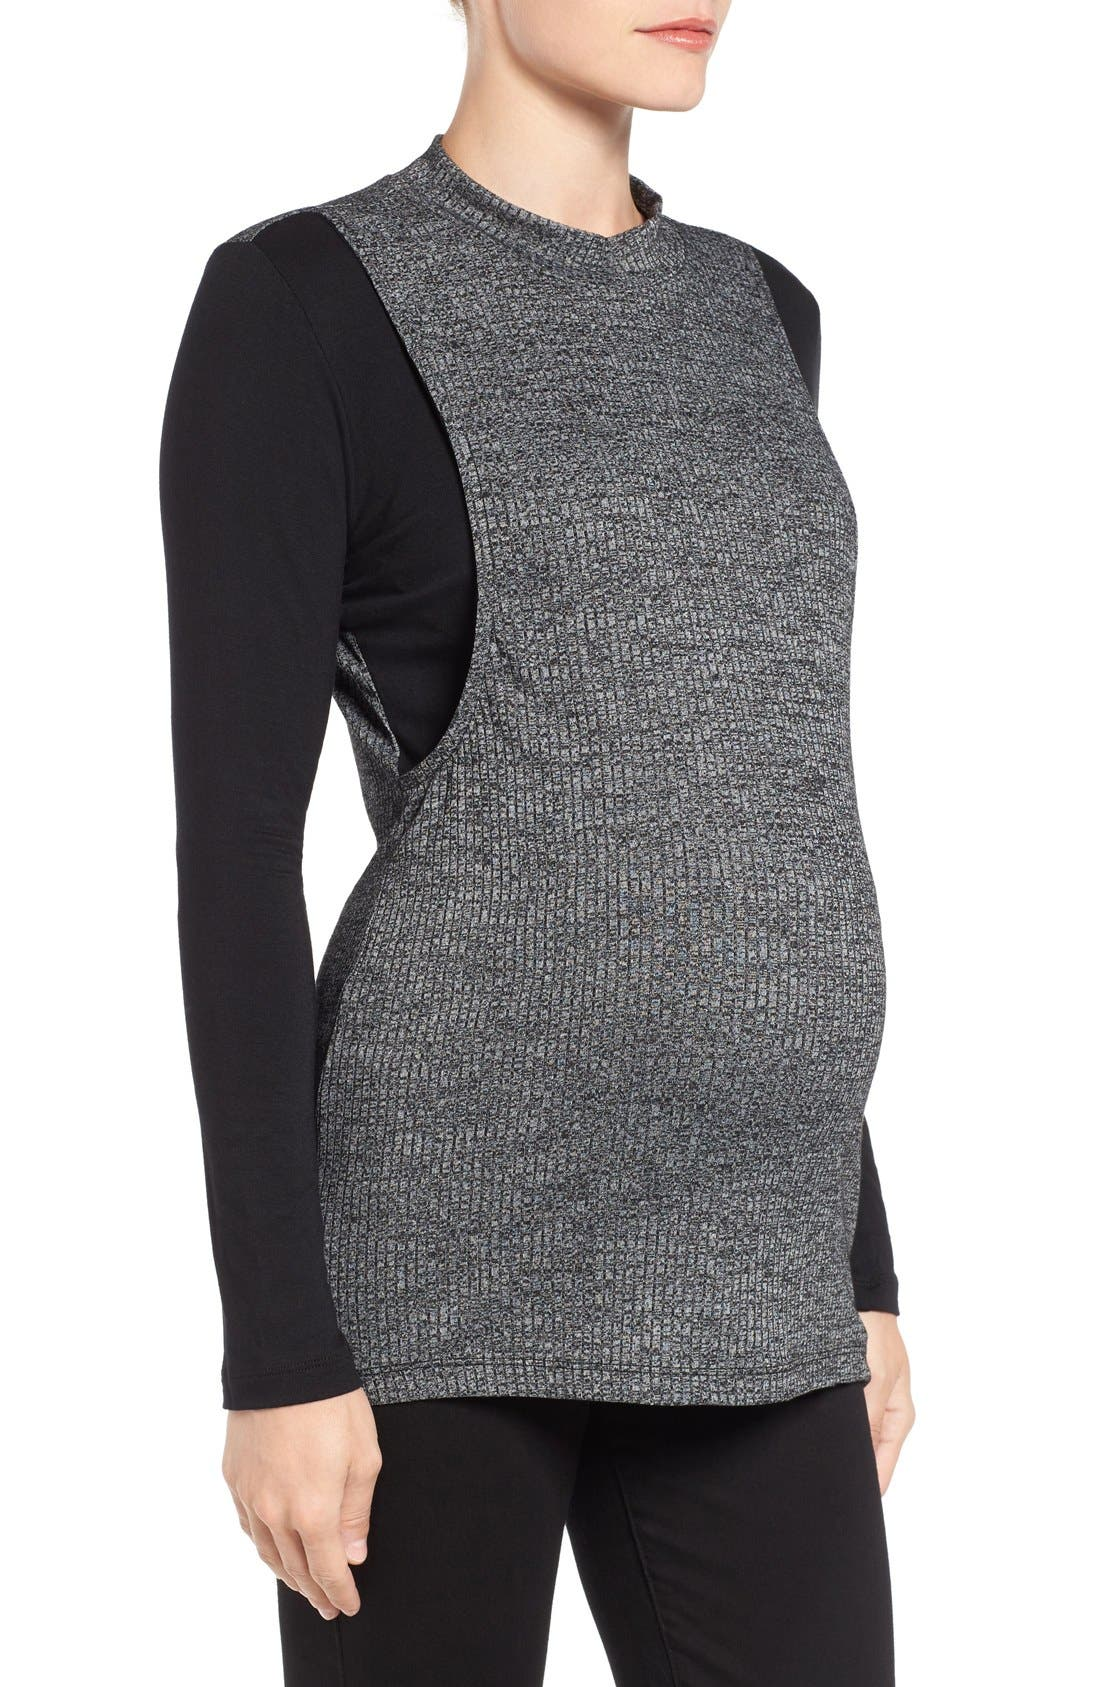 Alternate Image 3  - LAB40 'Brie' Colorblock Maternity/Nursing Sweater